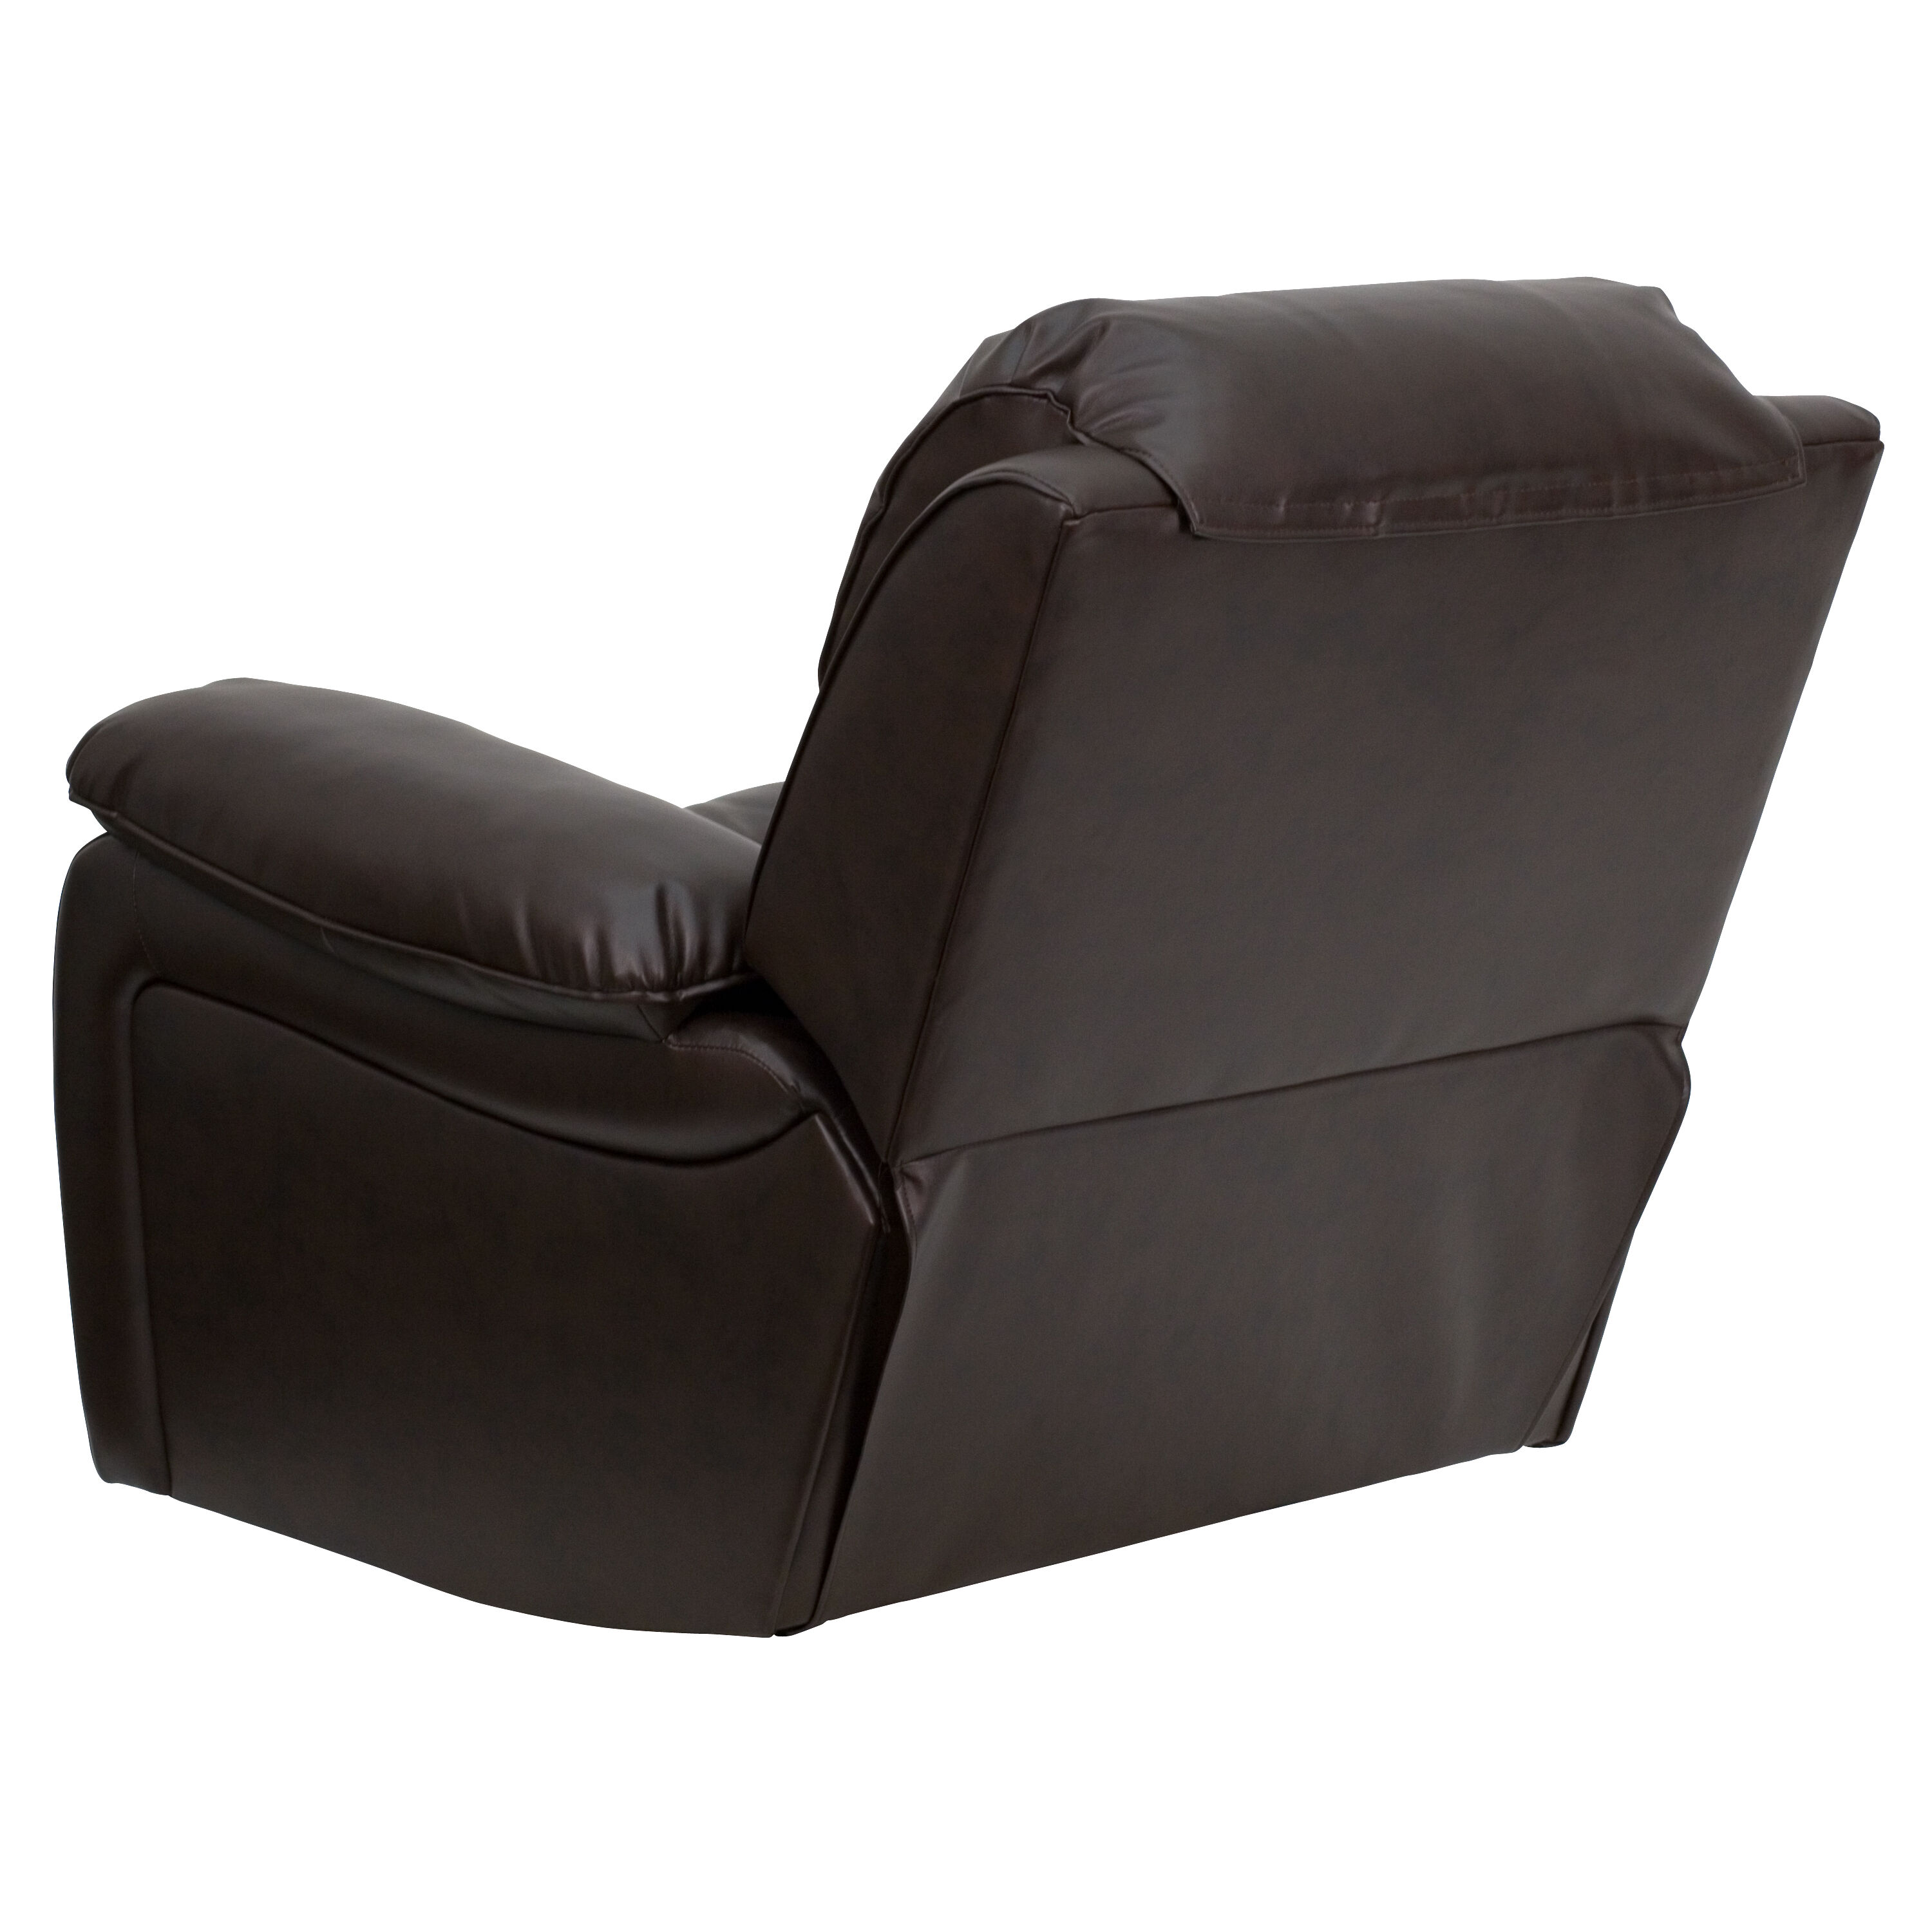 Our Brown Leather Rocker Recliner Is On Sale Now.